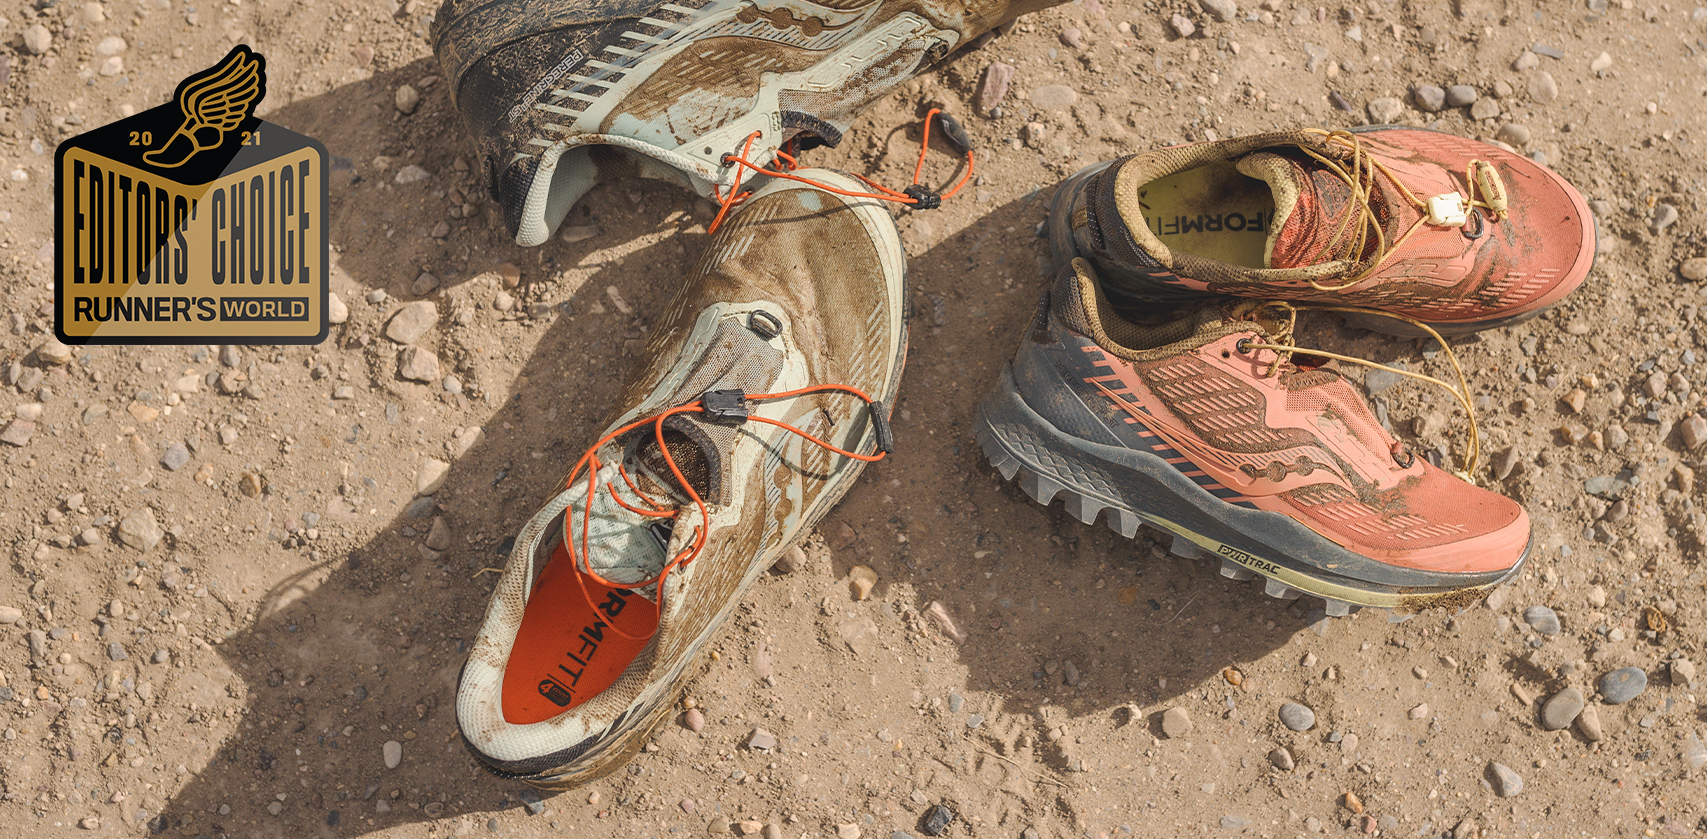 Peregrine shoes in the dirt. Editors choice - Runner's world.